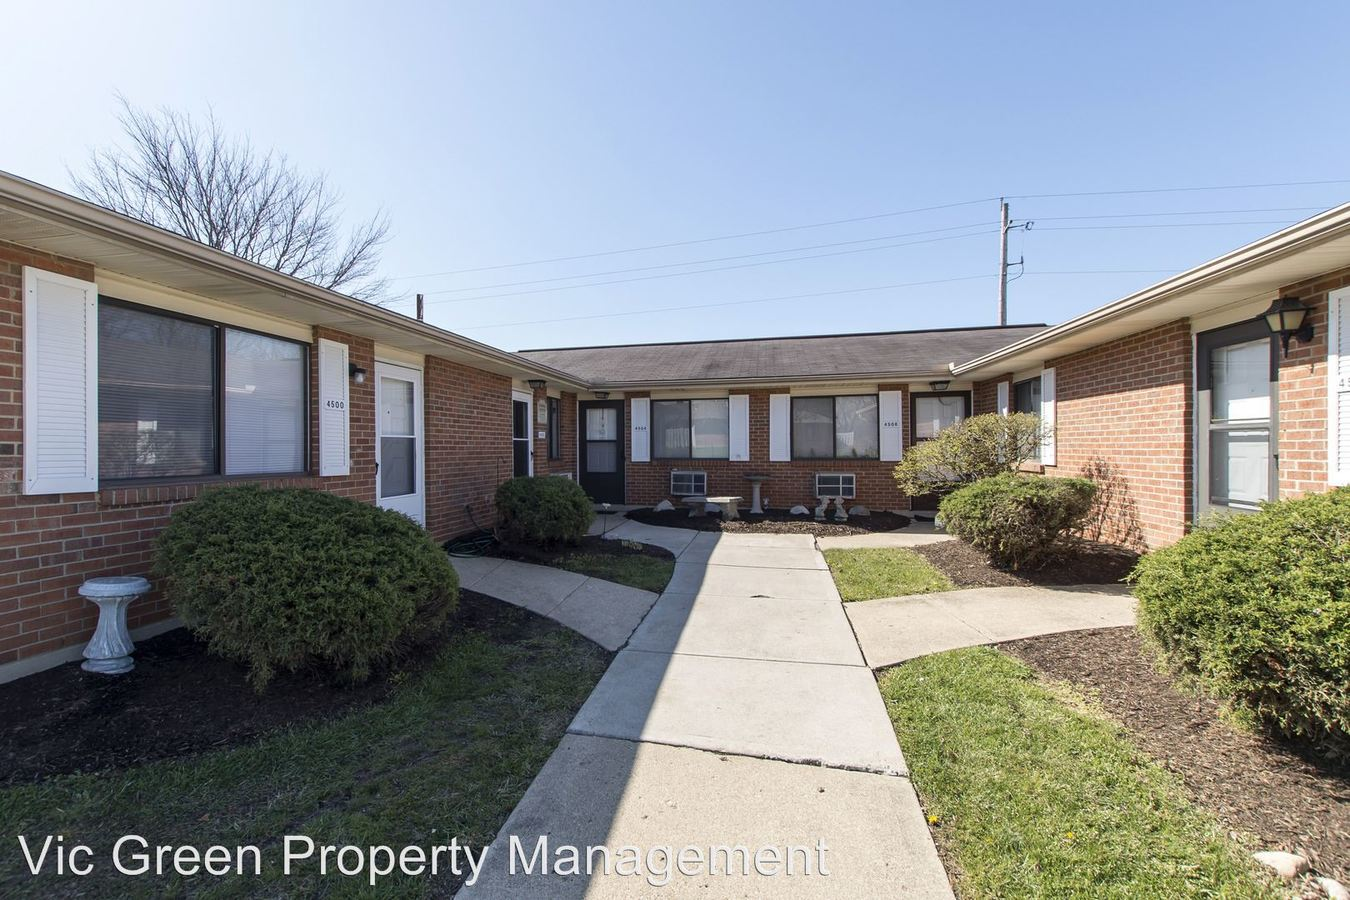 2 Bedrooms 1 Bathroom Apartment for rent at 4500 Waynedale Circle in Dayton, OH